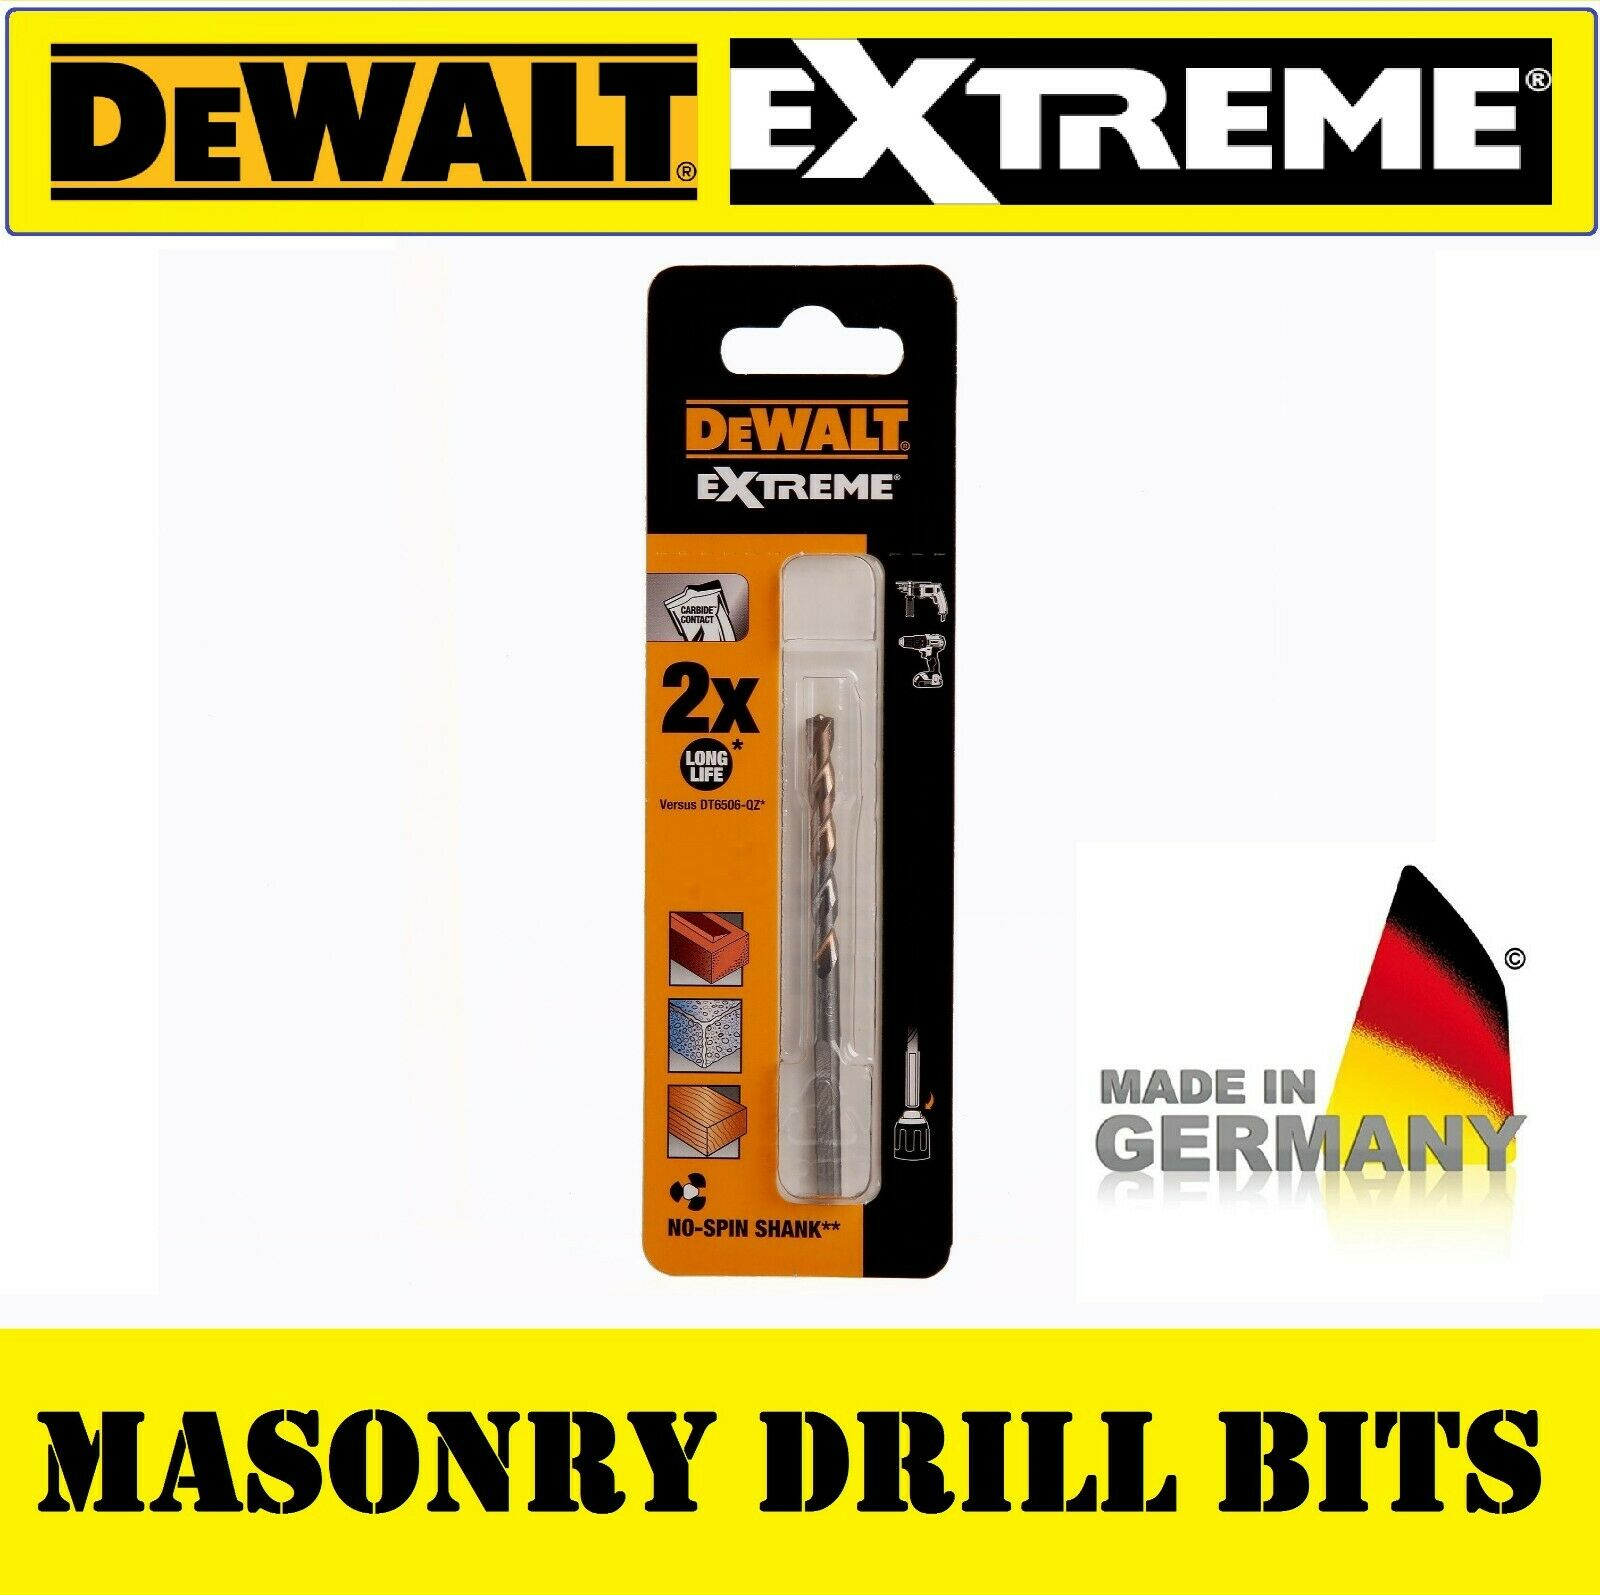 Dewalt Extreme Glass Slate Granite Diamond Tile Drill bits 10 12 15 20 25mm